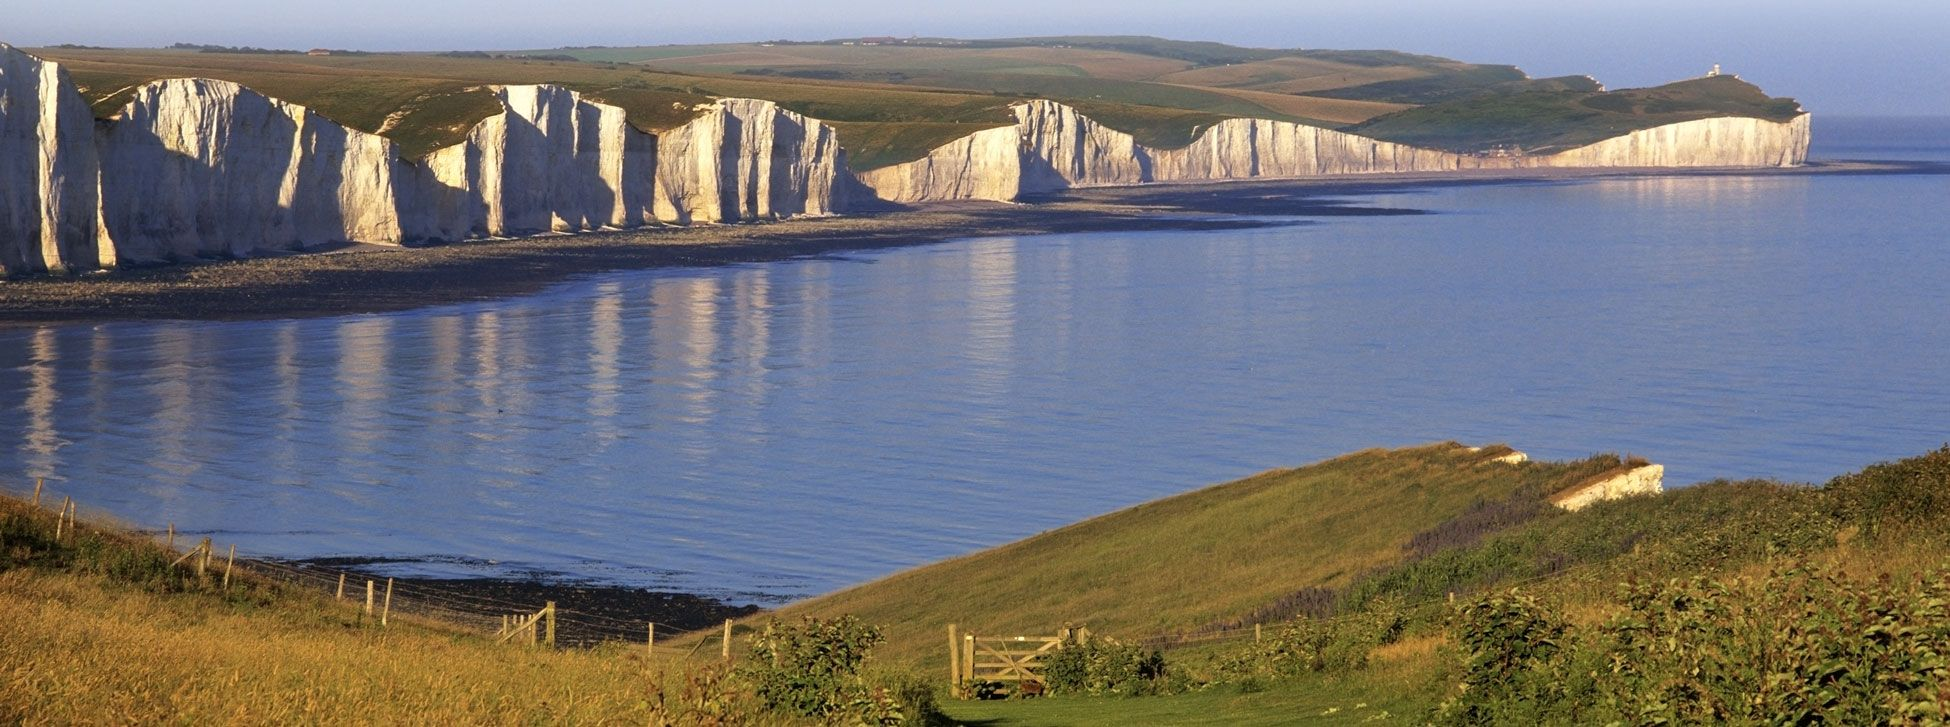 South Downs White Cliffs